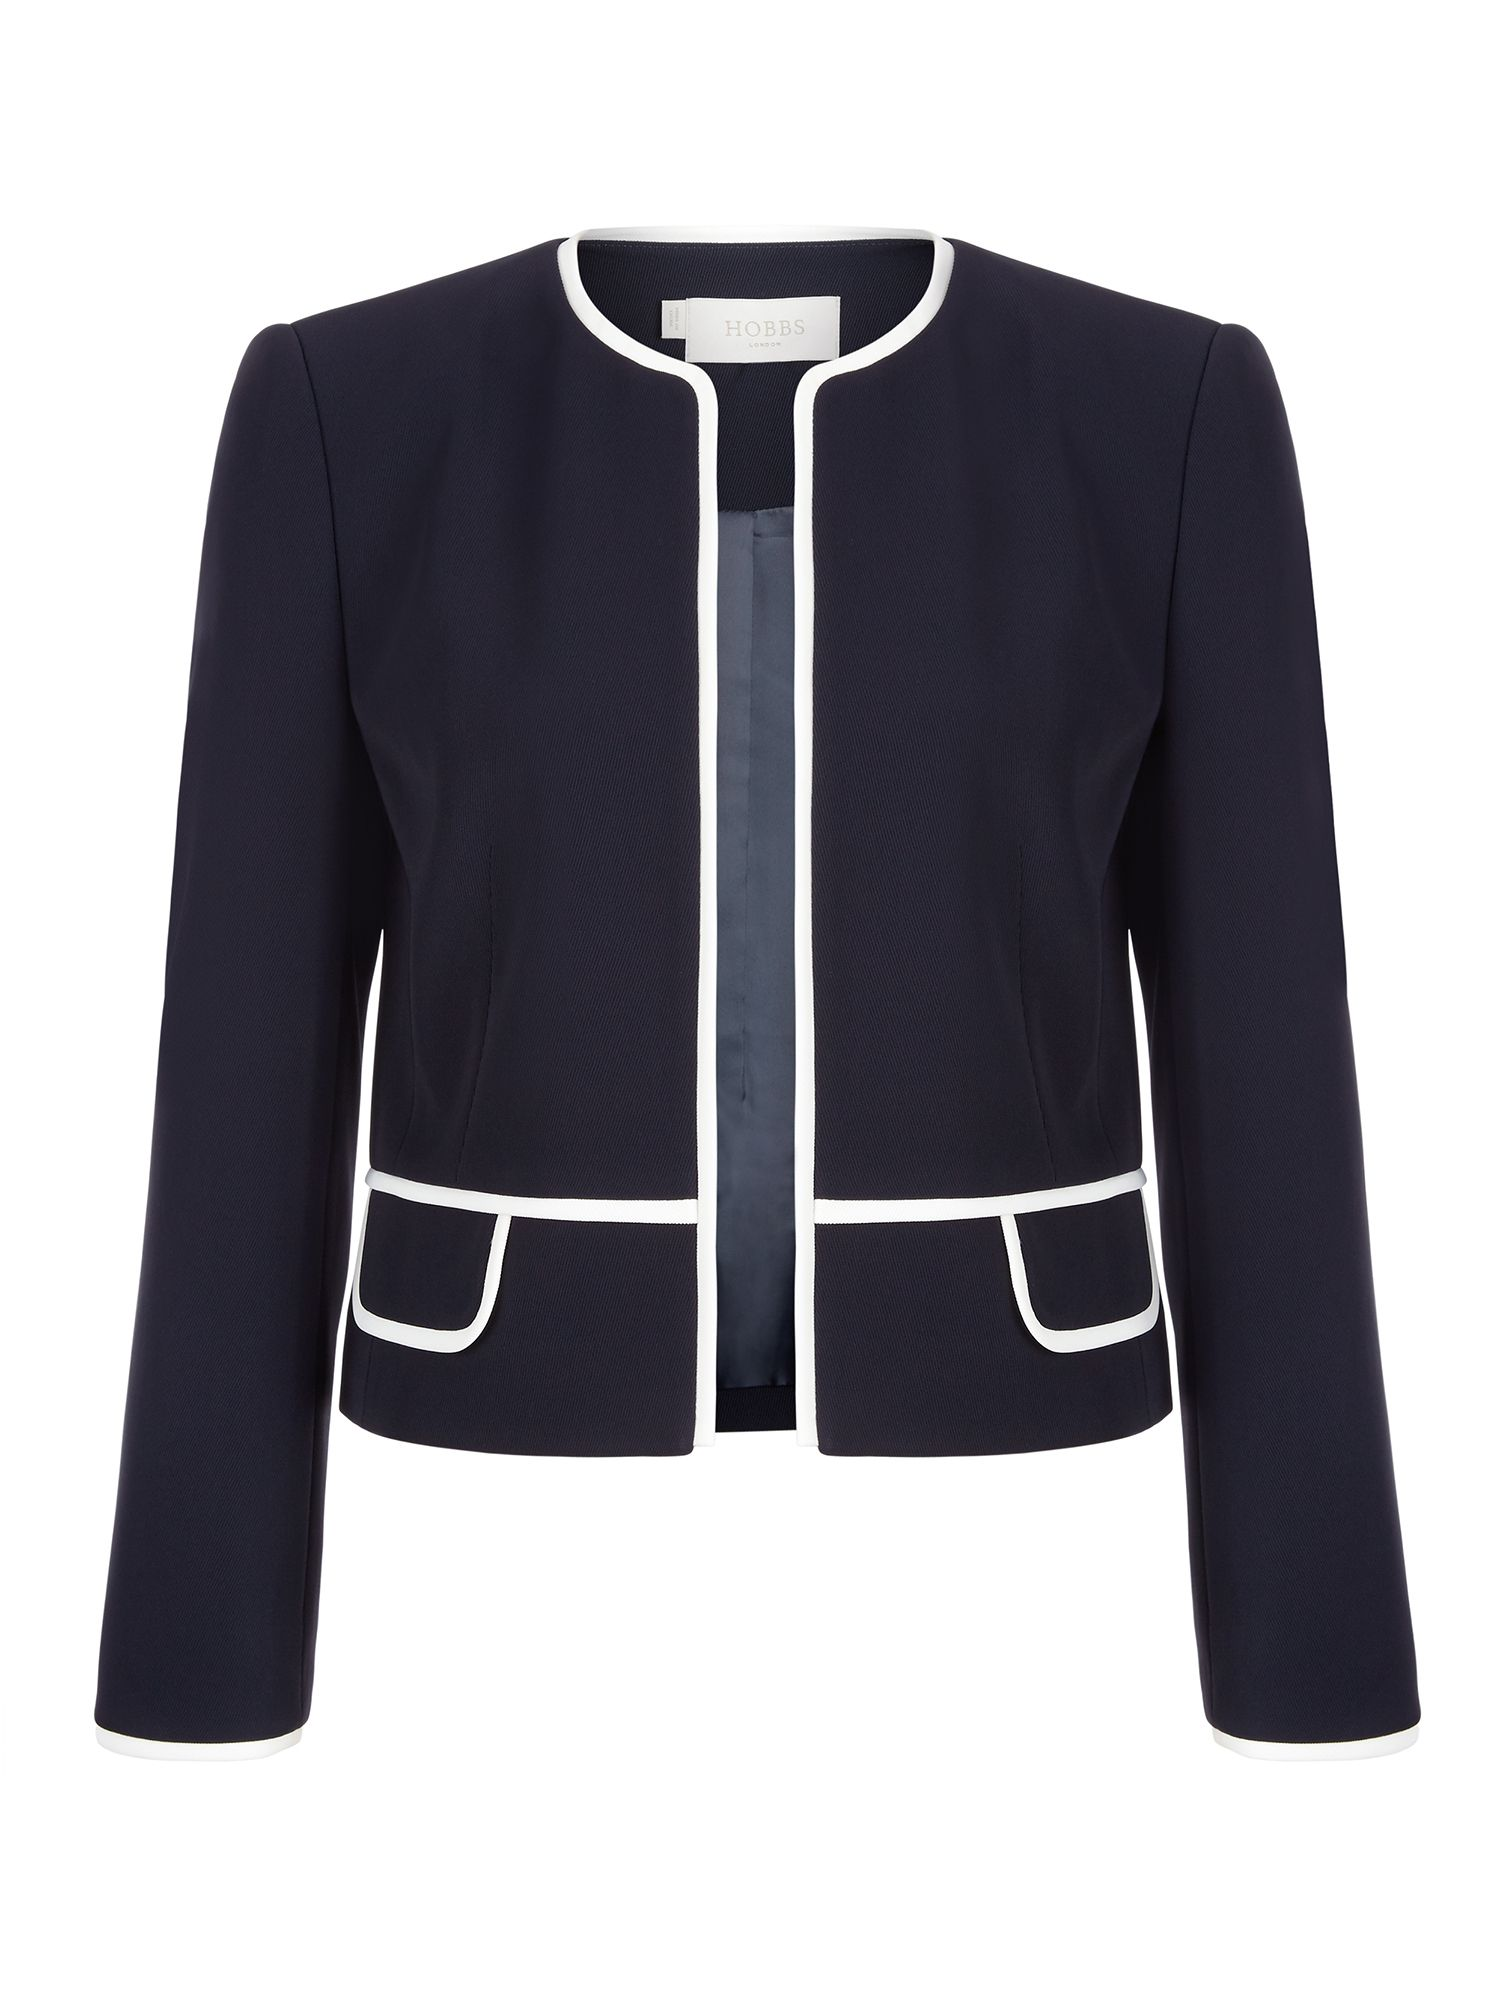 Hobbs Elizabeth Jacket, Multi-Coloured